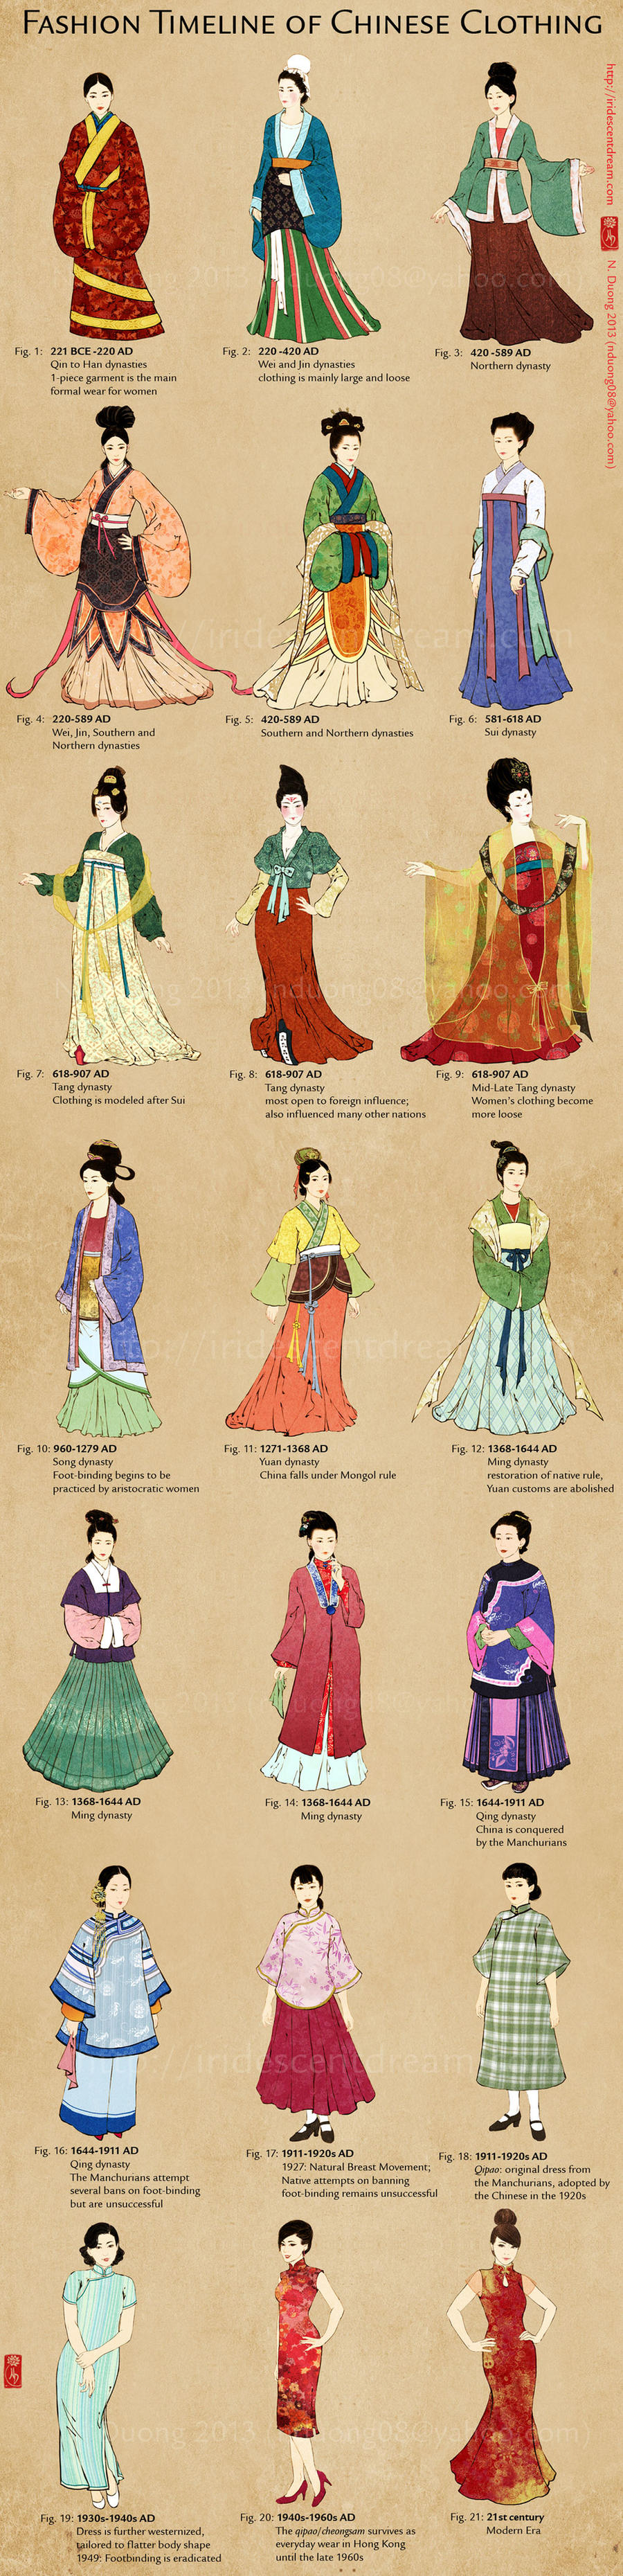 Evolution of Chinese Clothing and Cheongsam/Qipao by lilsuika on ...